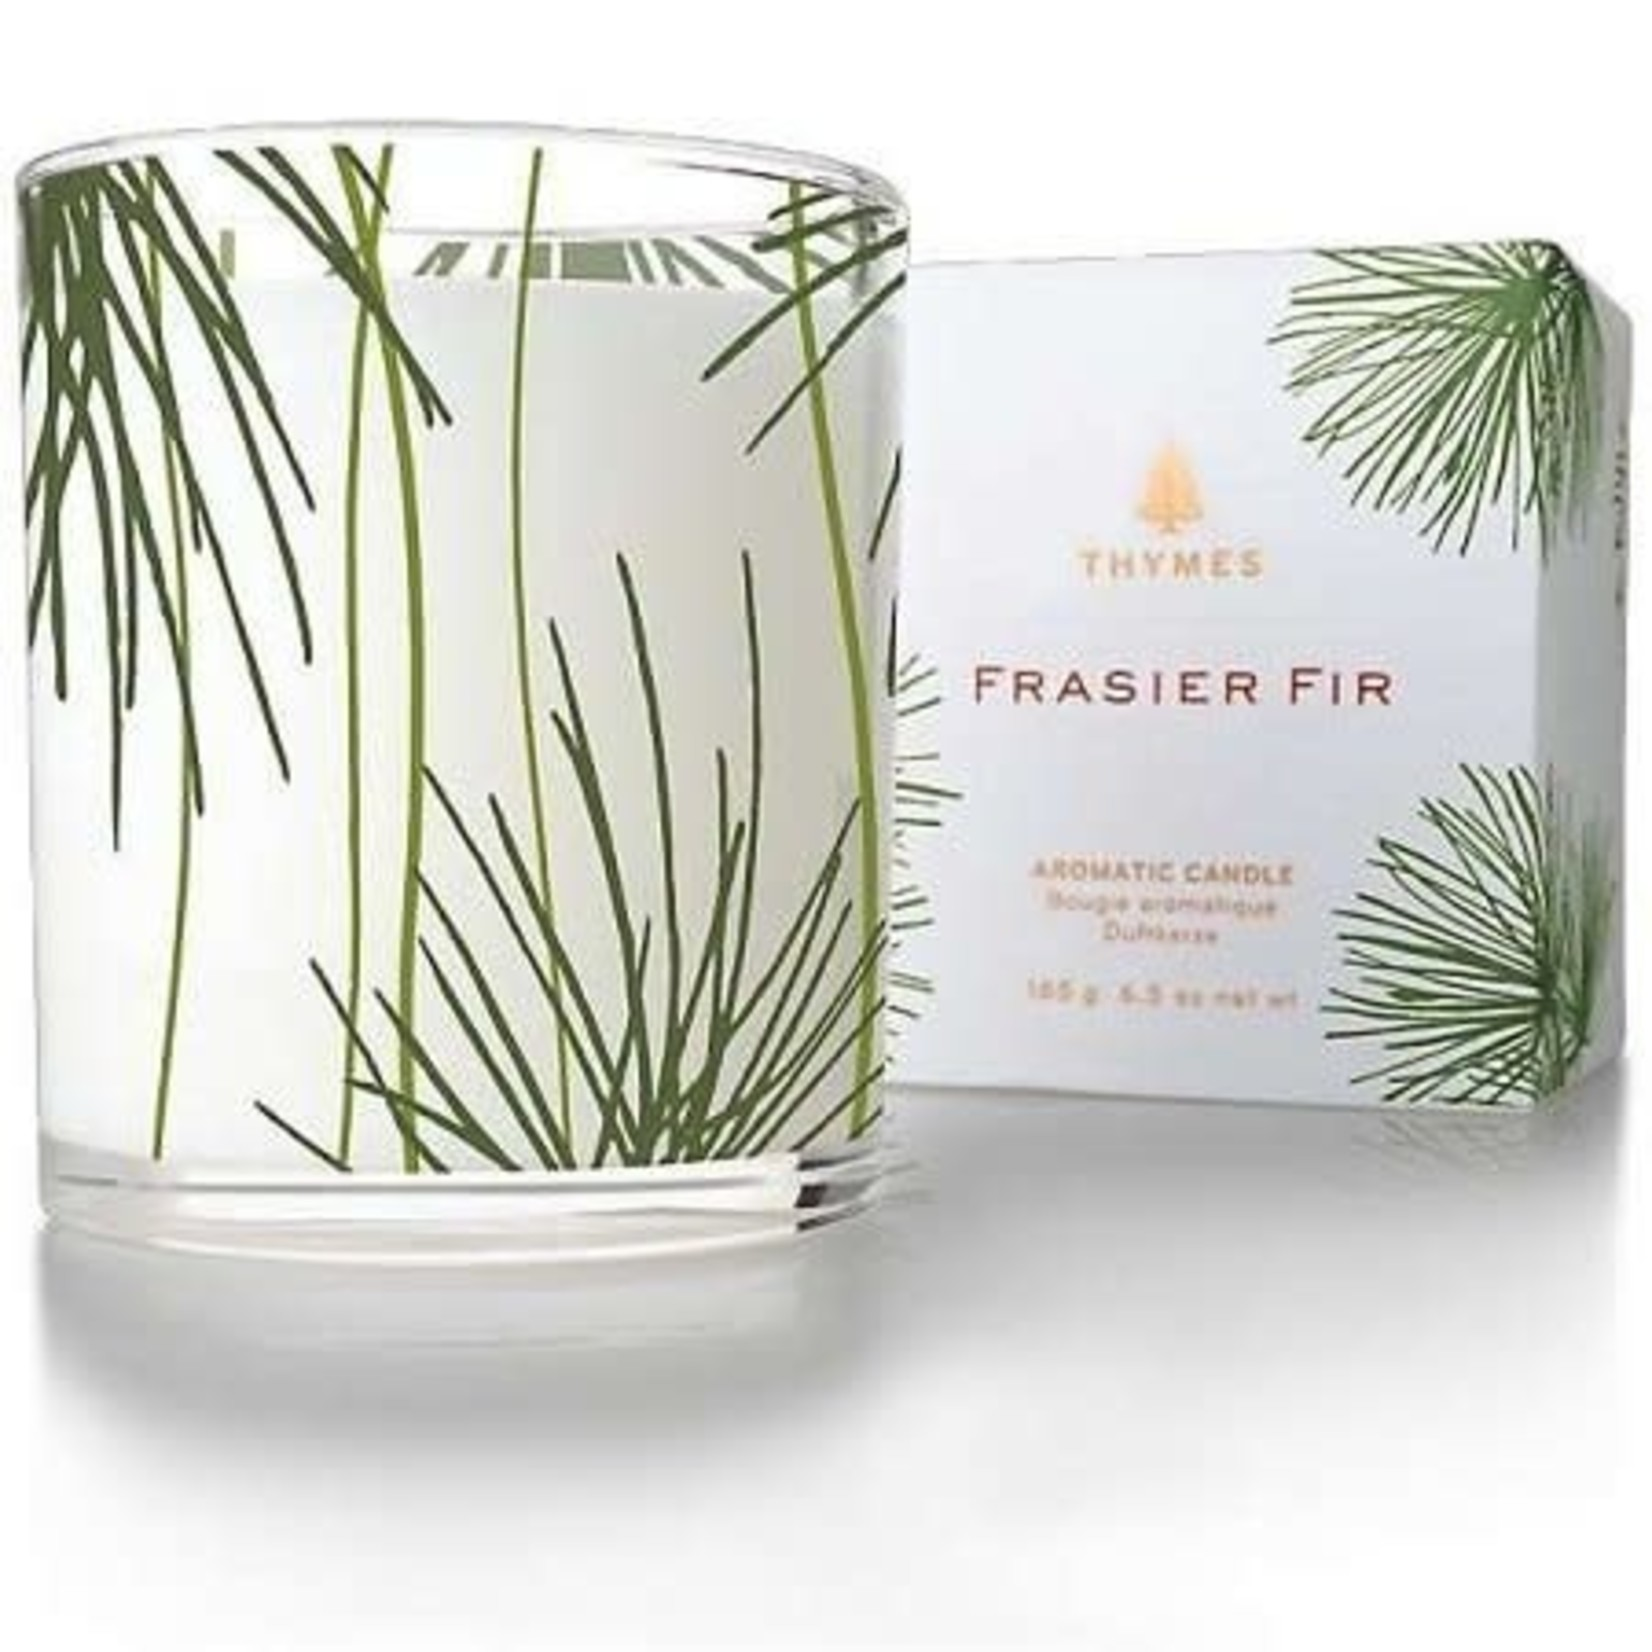 Frasier Fir Poured Candle, Pine Needle Design